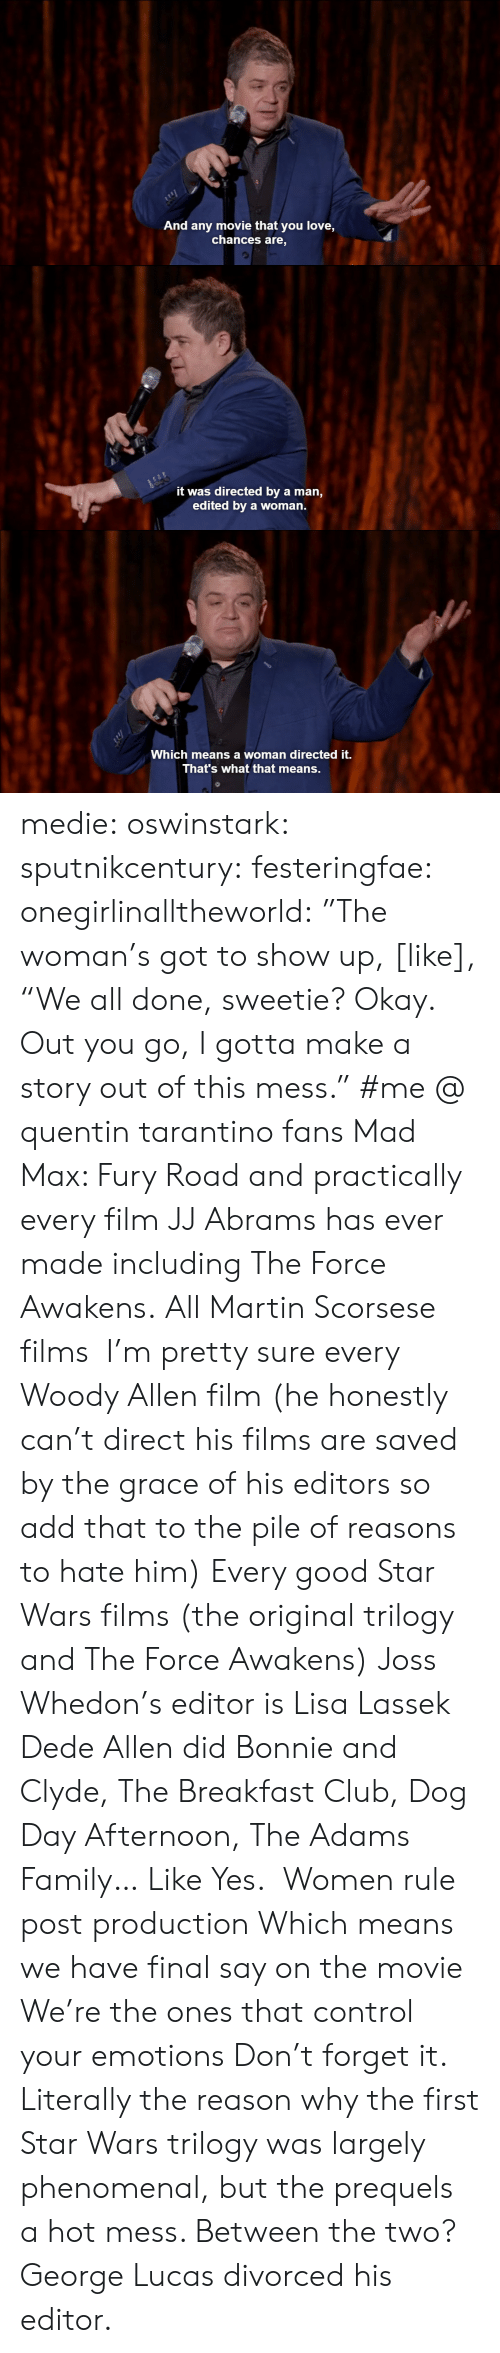 "Whedon: And any movie that you love,  chances are,   it was directed by a man,  edited by a woman.   c-  Which means a woman directed it.  That's what that means. medie:   oswinstark:  sputnikcentury:  festeringfae:  onegirlinalltheworld:  ""The woman's got to show up, [like], ""We all done, sweetie? Okay. Out you go, I gotta make a story out of this mess.""  #me @ quentin tarantino fans  Mad Max: Fury Road and practically every film JJ Abrams has ever made including The Force Awakens.  All Martin Scorsese films  I'm pretty sure every Woody Allen film (he honestly can't direct his films are saved by the grace of his editors so add that to the pile of reasons to hate him) Every good Star Wars films (the original trilogy and The Force Awakens) Joss Whedon's editor is Lisa Lassek Dede Allen did Bonnie and Clyde, The Breakfast Club, Dog Day Afternoon, The Adams Family… Like Yes.  Women rule post production Which means we have final say on the movie We're the ones that control your emotions Don't forget it.  Literally the reason why the first Star Wars trilogy was largely phenomenal, but the prequels a hot mess.  Between the two? George Lucas divorced his editor."